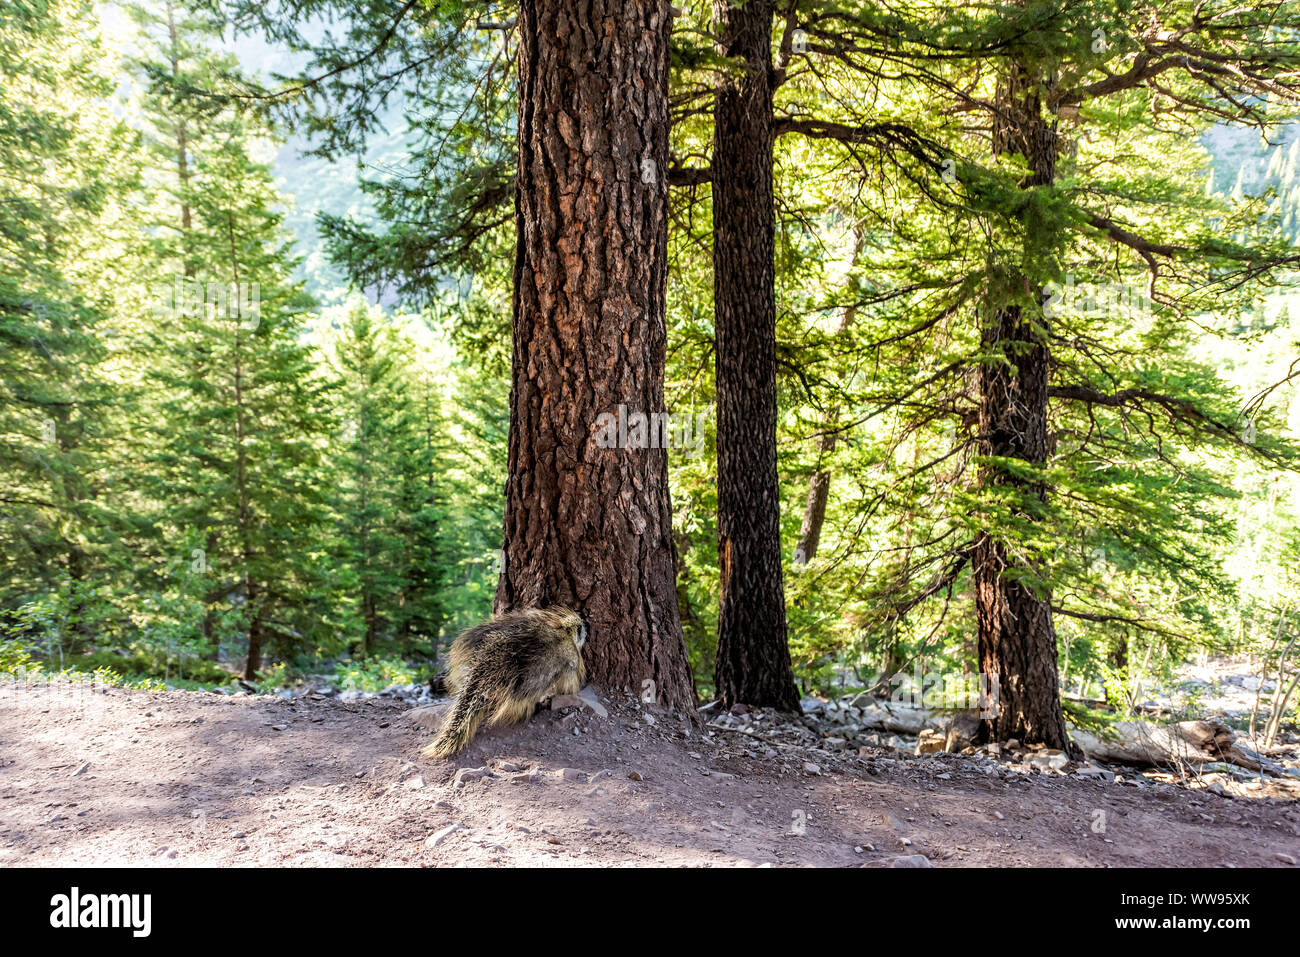 Maroon Bells crater lake trail in Aspen, Colorado with forest footpath and porcupine wildlife wild animal Stock Photo